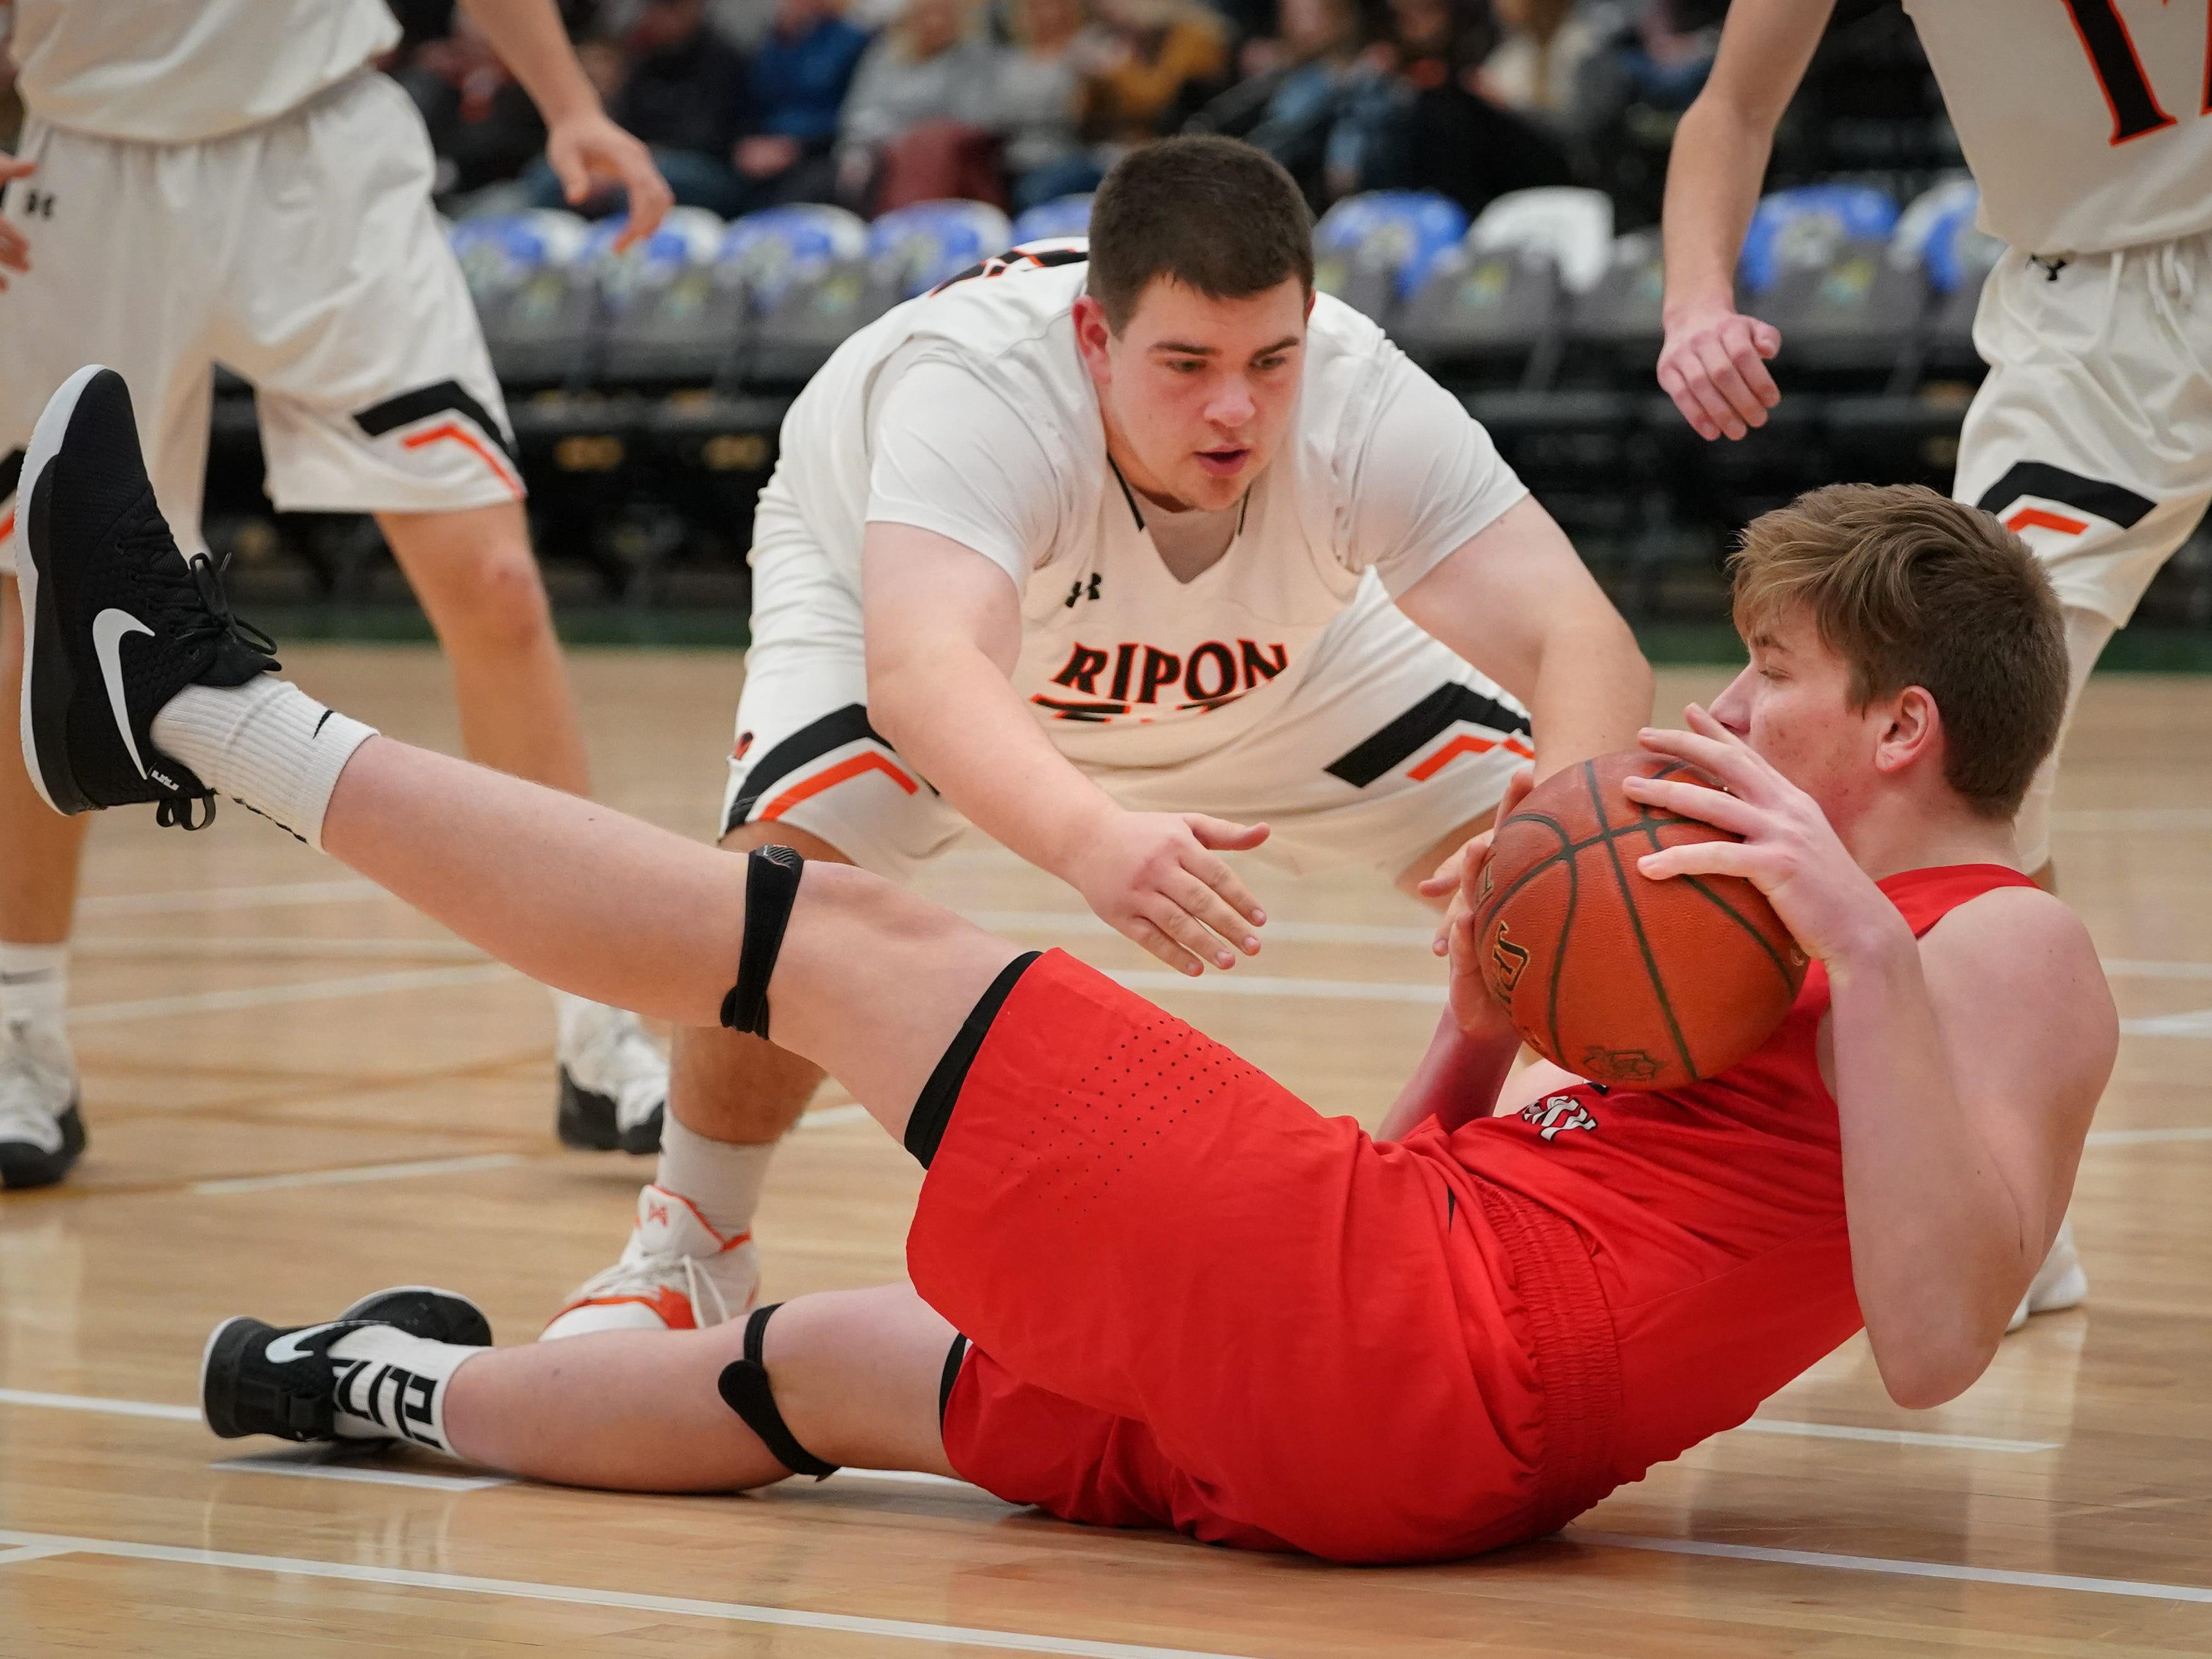 George Muench (21) of Lourdes tries to keep the ball away from Jackson Morrin (55) of Ripon. The Lourdes Knights and Ripon Tigers met in a nonconference basketball game Saturday afternoon, December 29, 2018 at the Menomonie Nation Arena in Oshkosh.